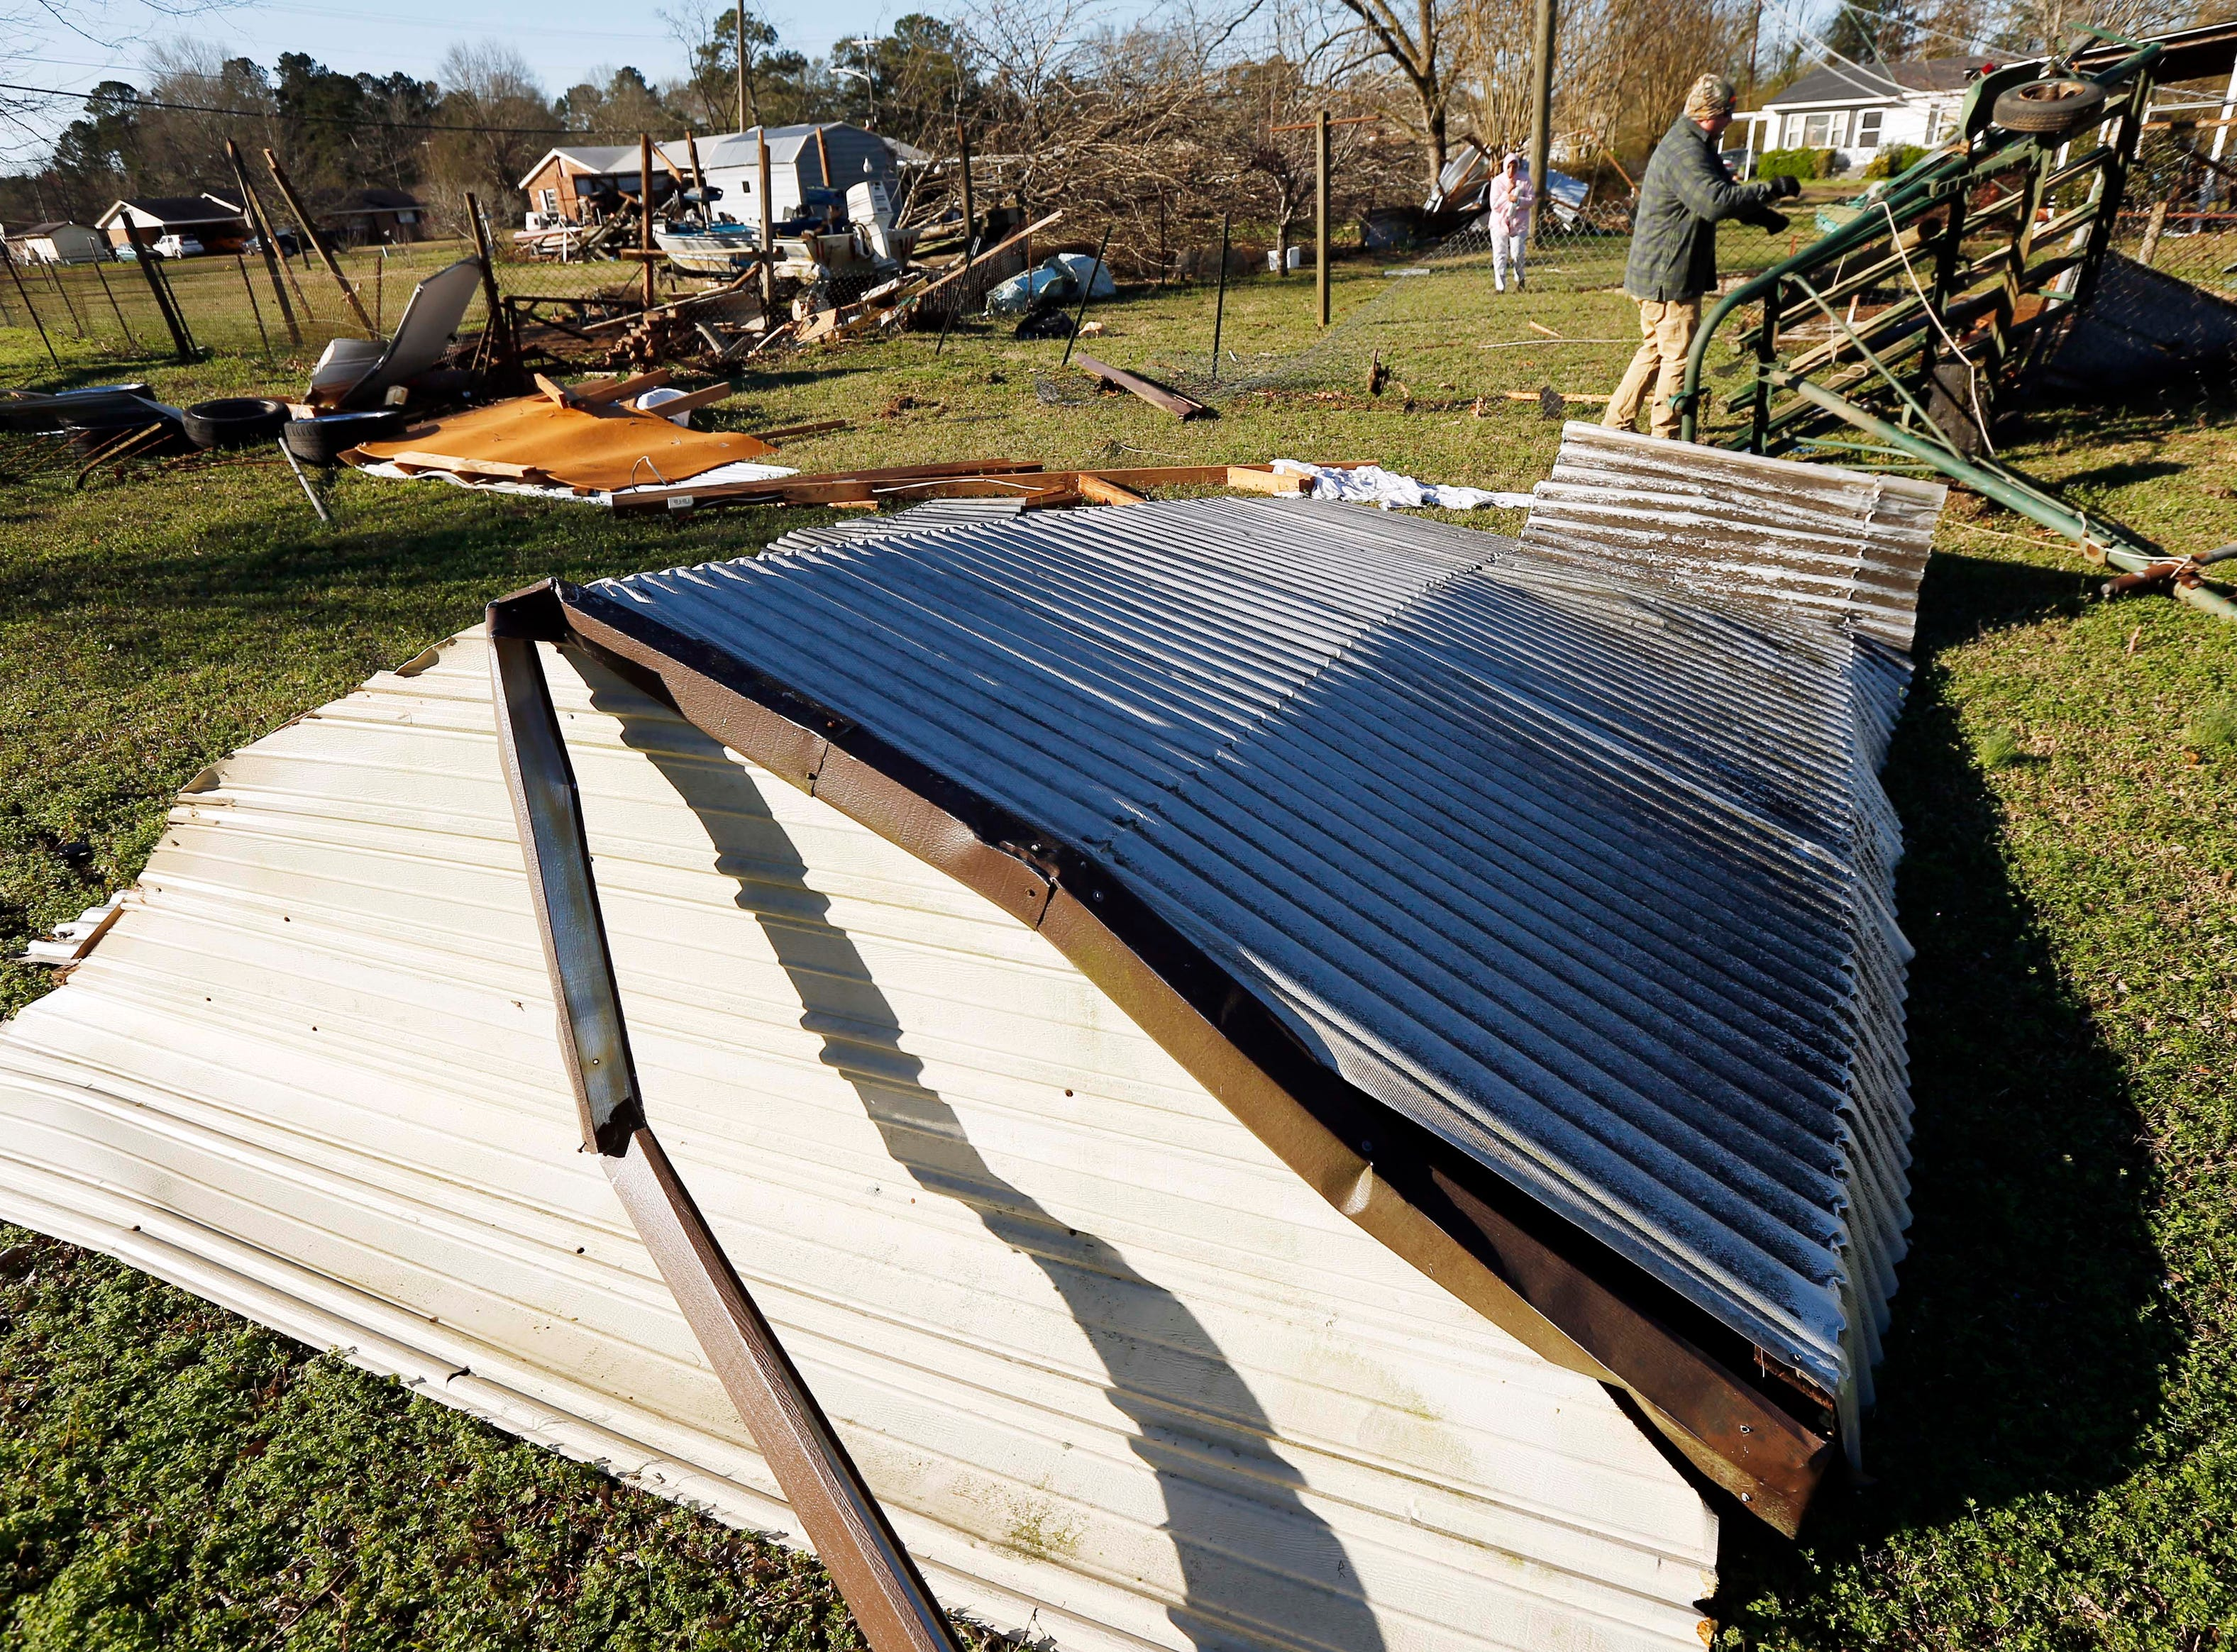 Tornado strewn debris, including this roofing, and fallen trees in this Columbus, Miss., neighborhood, Sunday morning, Feb. 24, 2019 after Saturday's tornado that killed at least one person and shattered businesses and several homes. (AP Photo/Rogelio V. Solis)